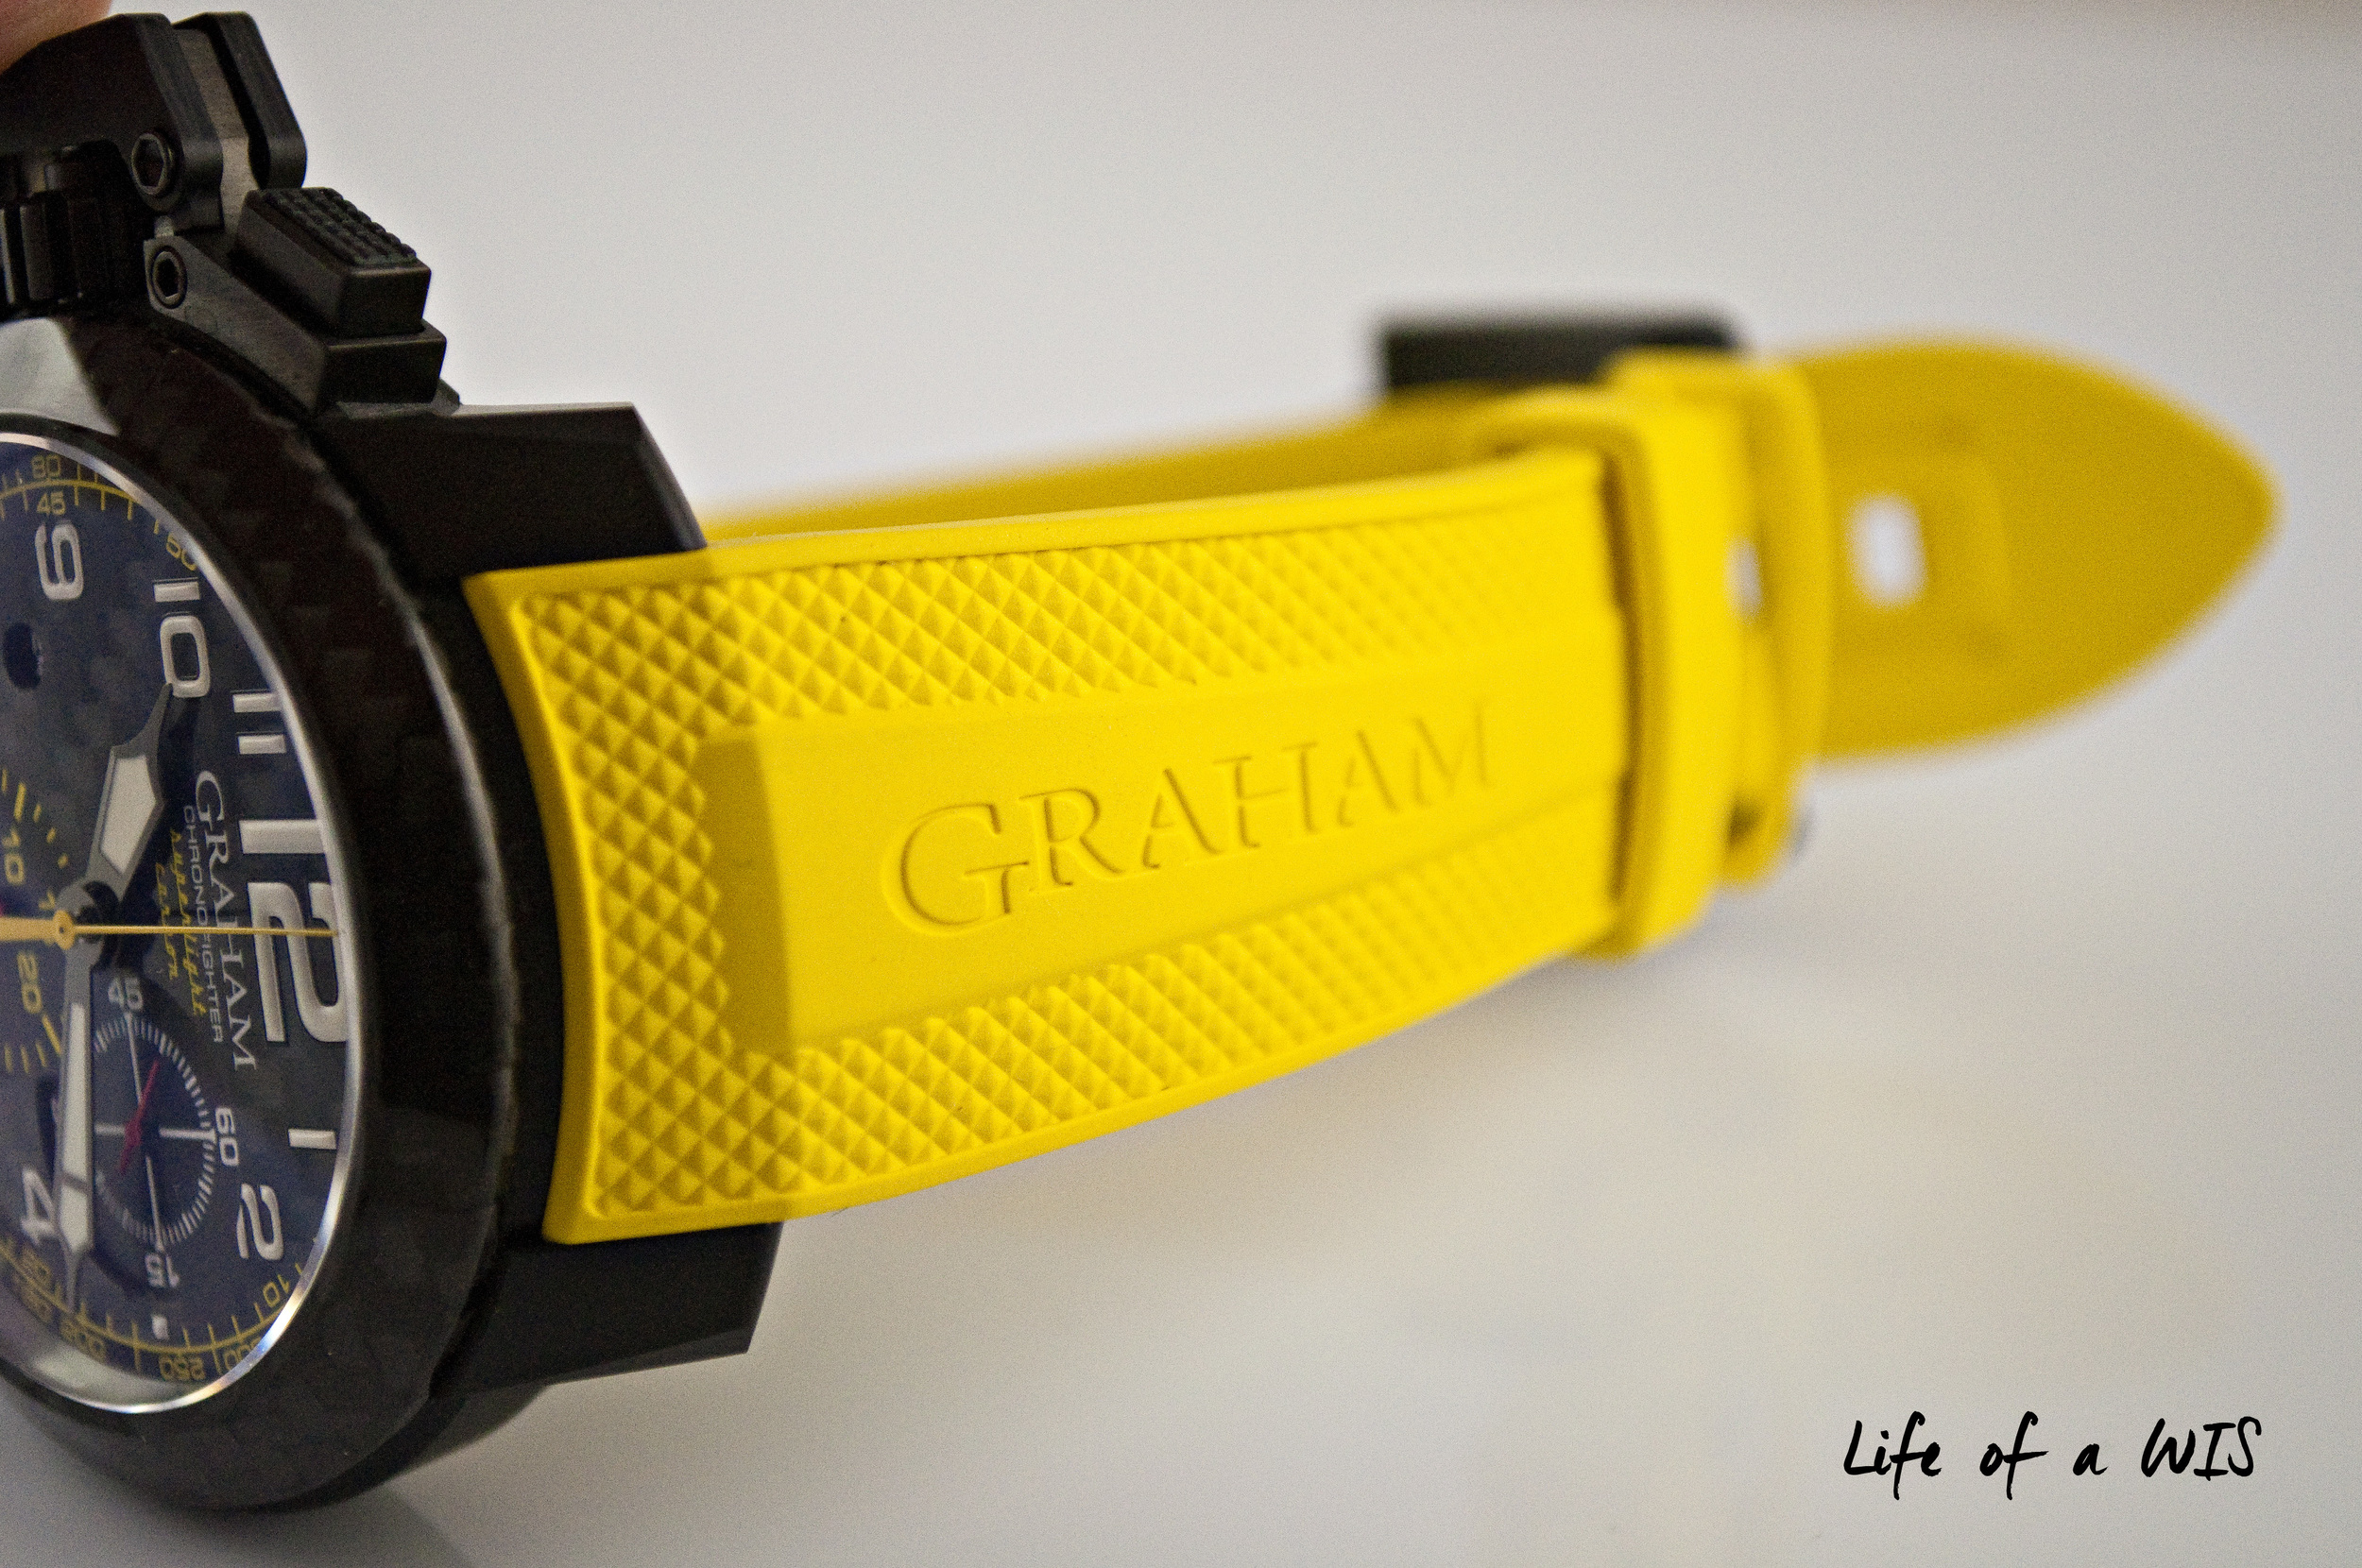 Despite its large size, this Graham is very comfortable on the wrist.